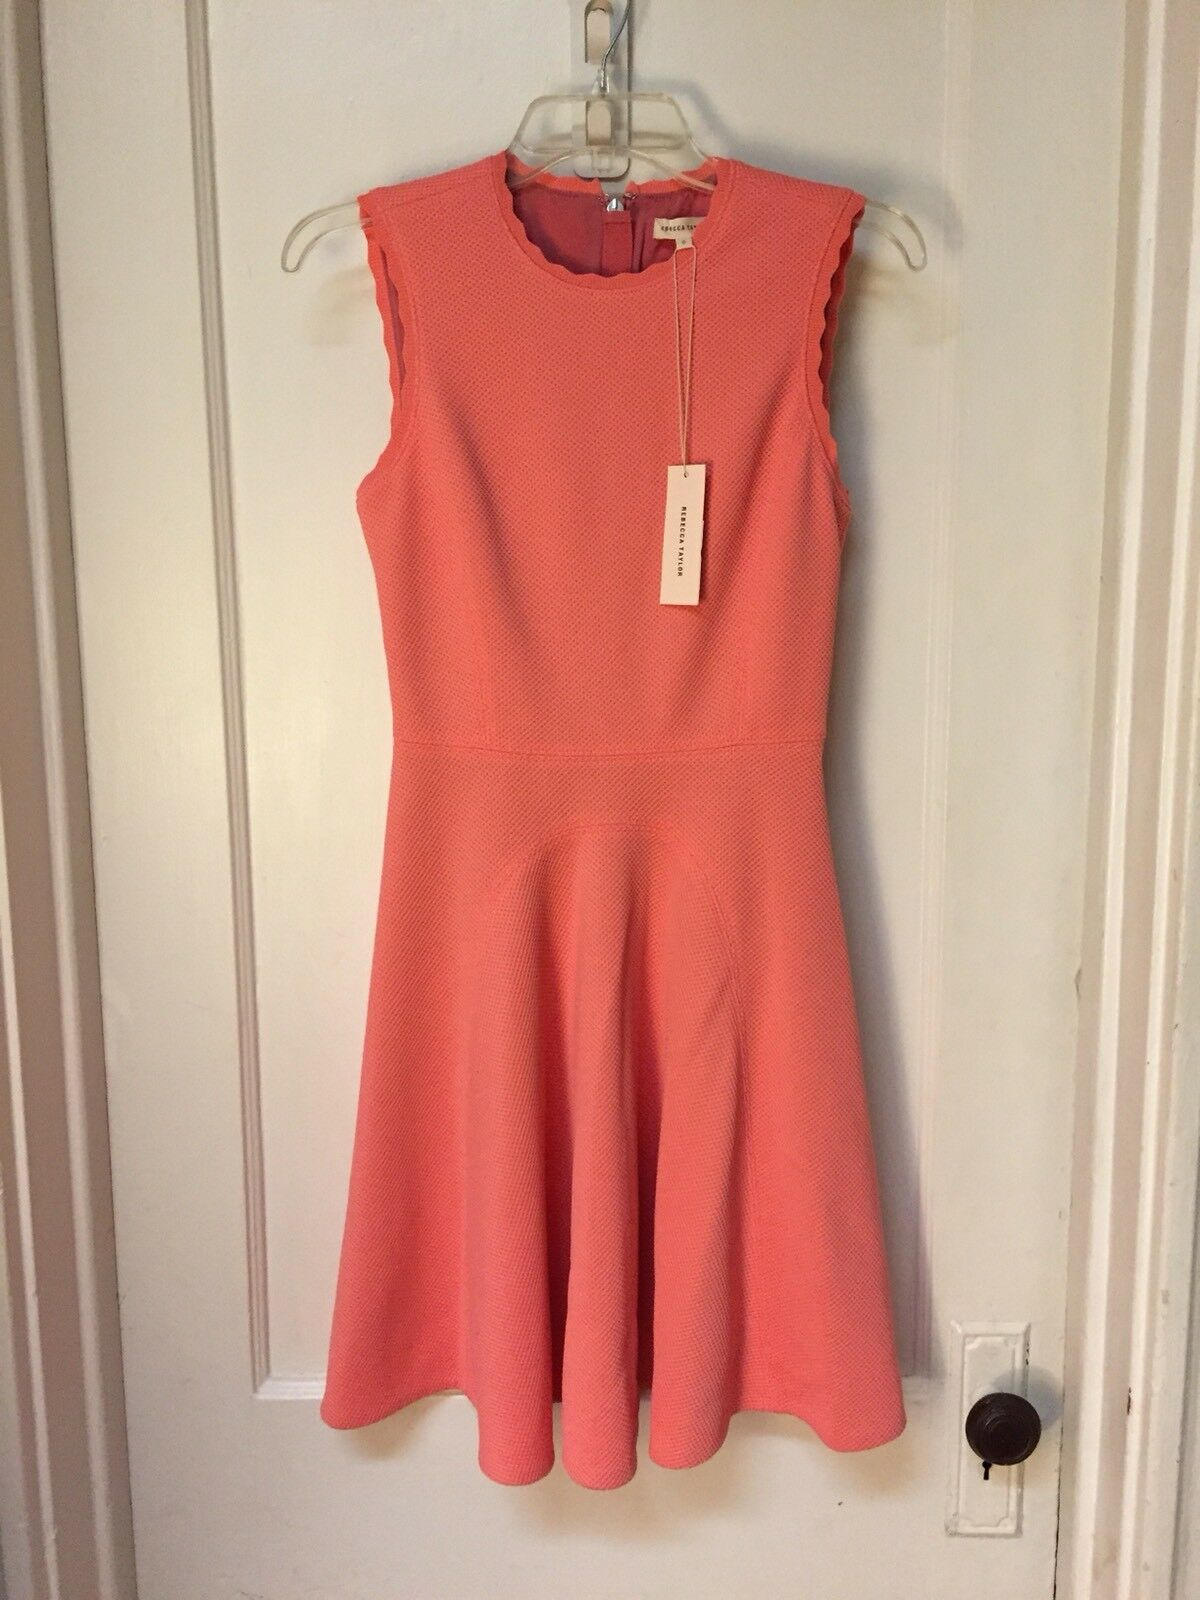 REBECCA TAYLOR SLEEVELESS FIT AND FLARE DRESS NEW Größe 0